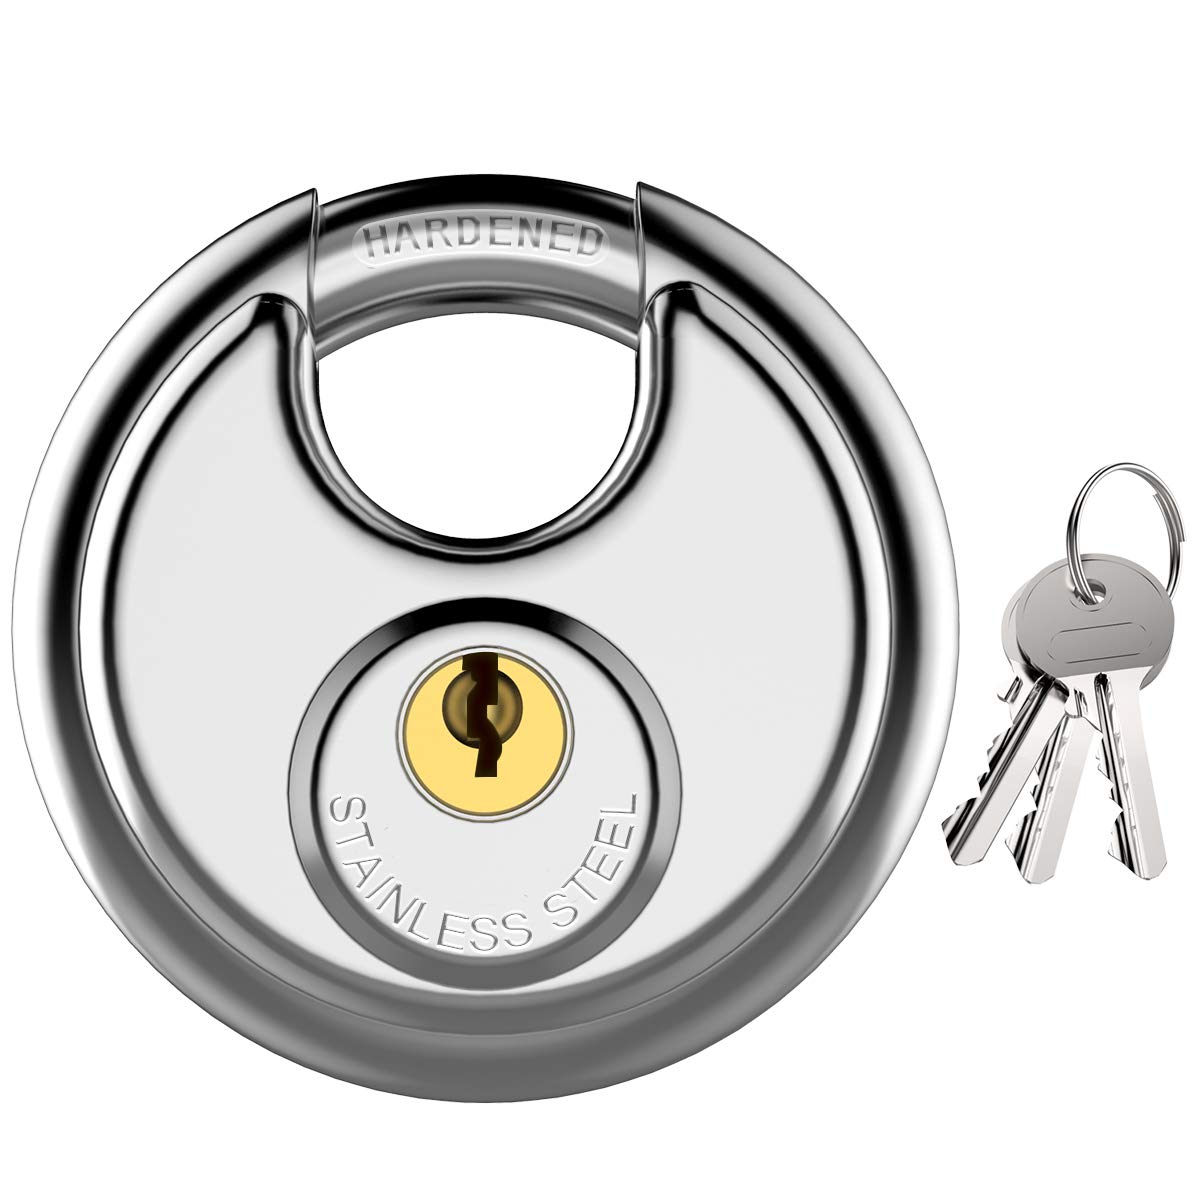 Puroma Keyed Padlock, Stainless Steel Discus Lock with 3/8-Inch Shackle for Sheds, Storage Unit, Garages and Fence by Puroma